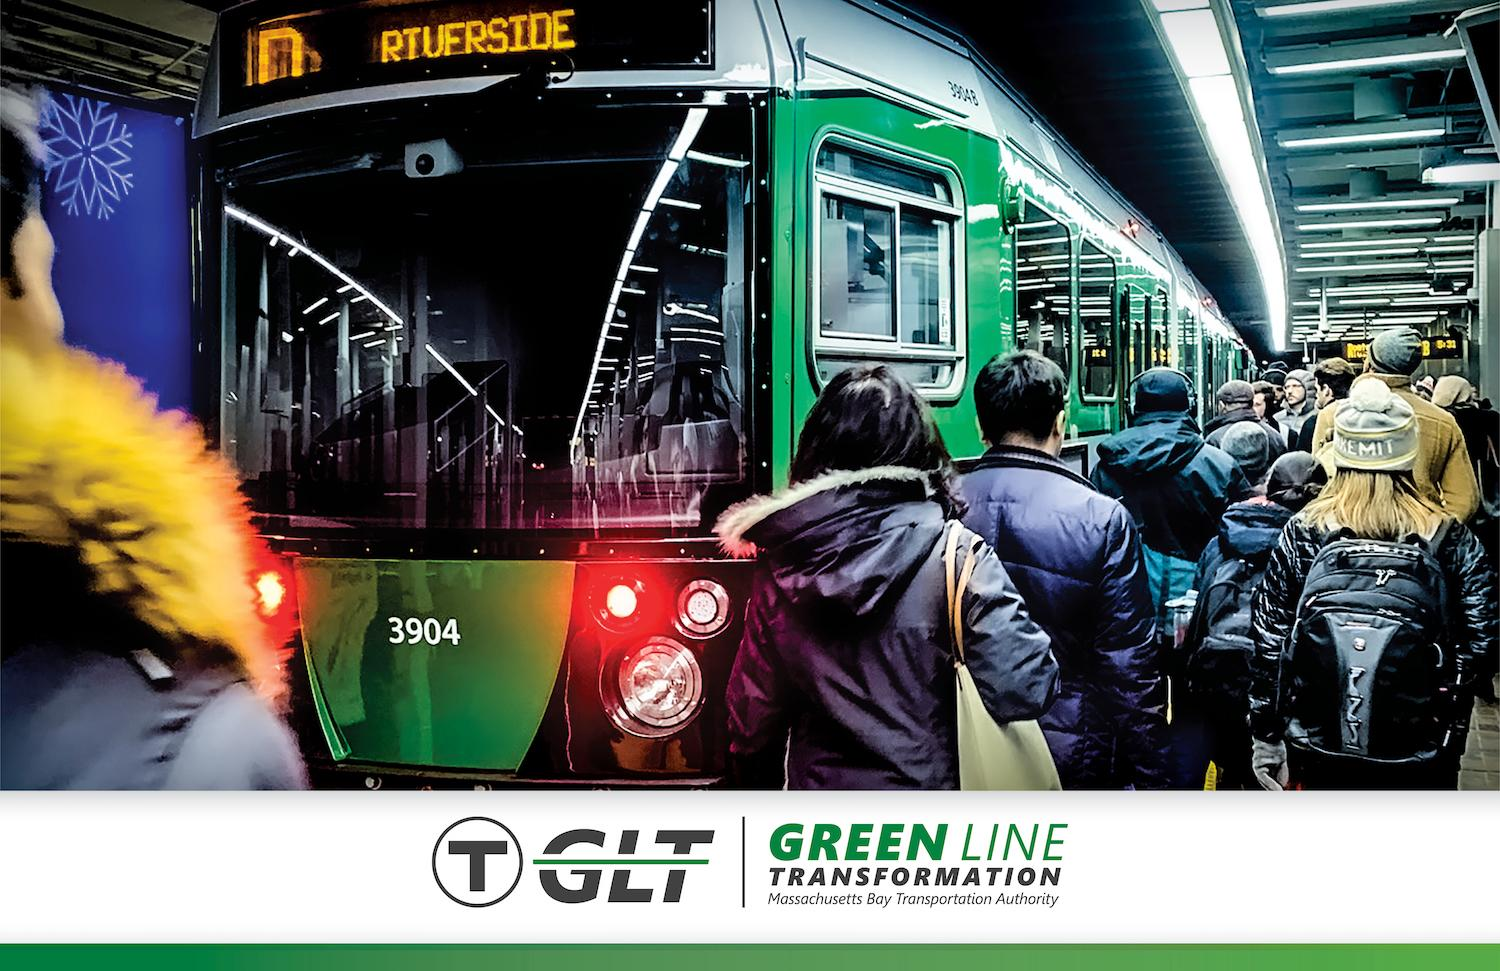 Riders approach a Green Line train in an MBTA station